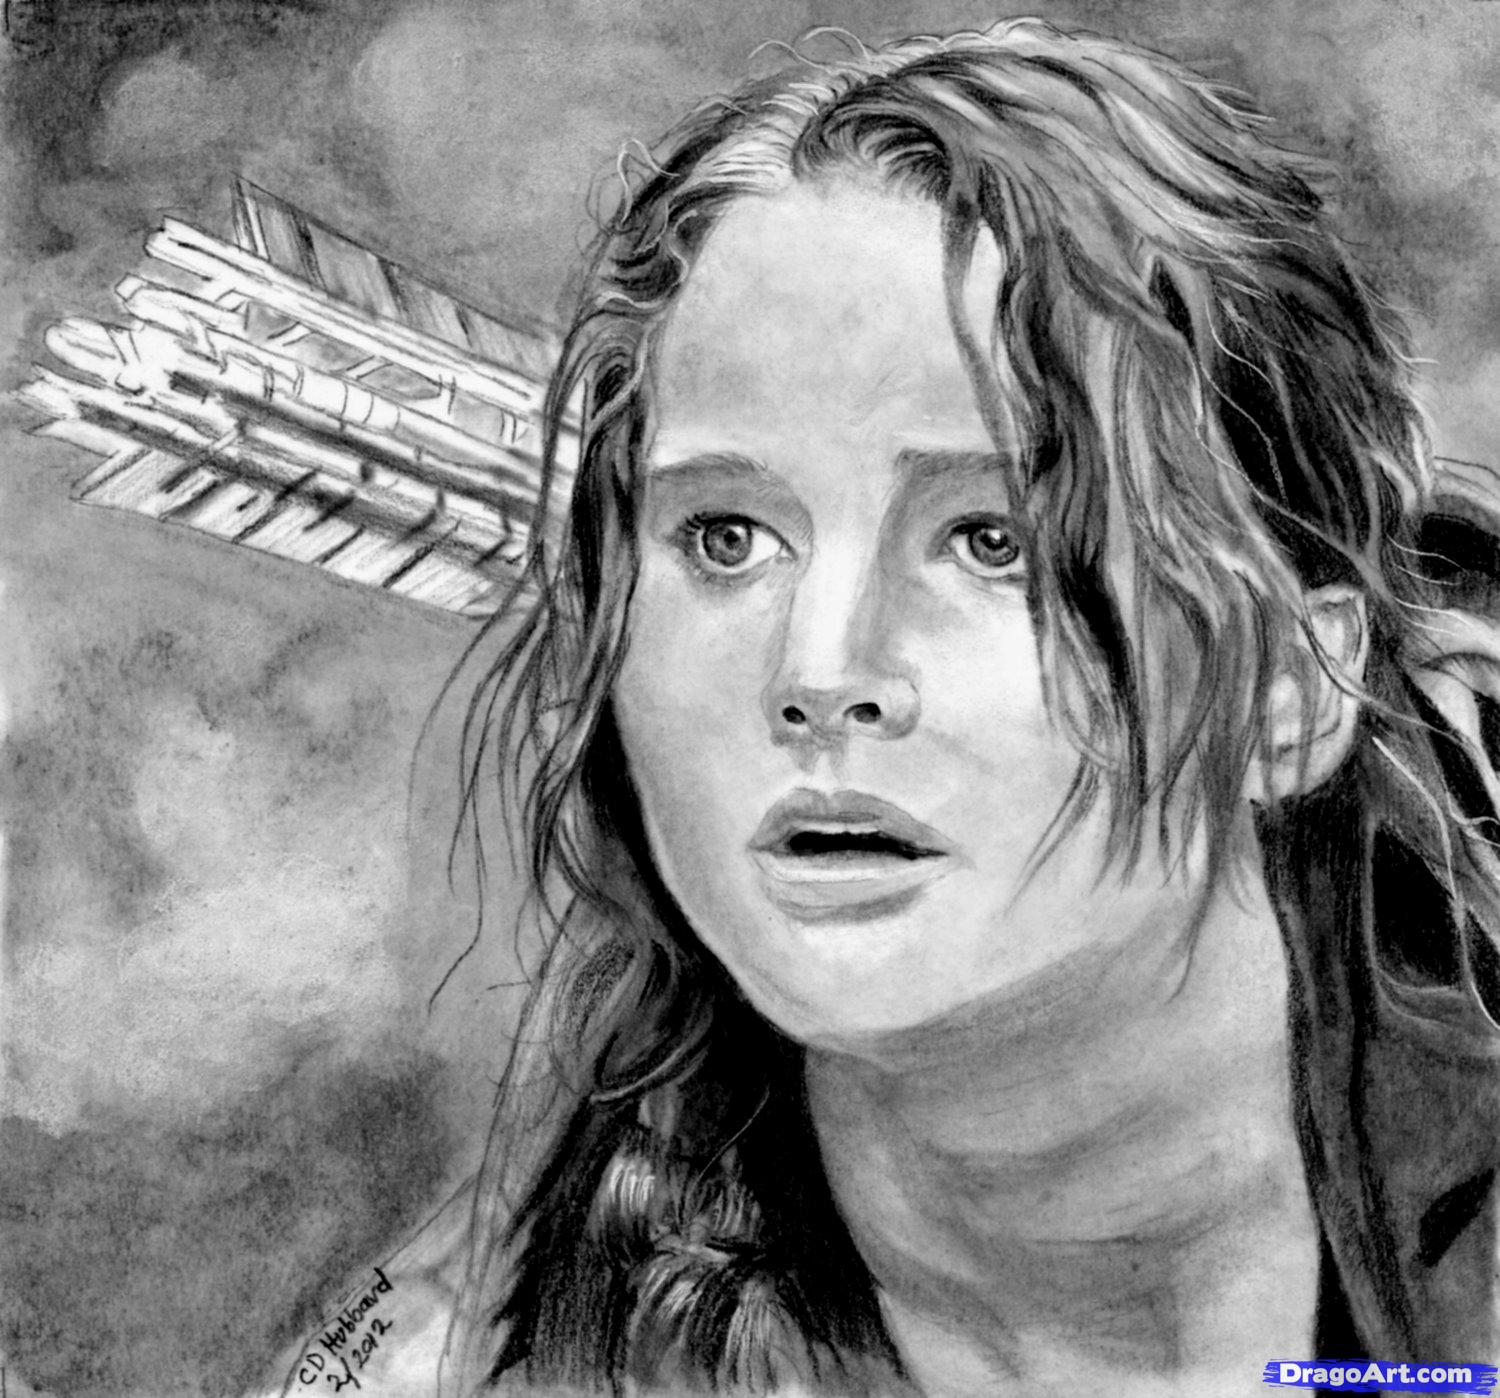 How to draw Jennifer Lawrence's portrait from Hungry games with a pencil step by step